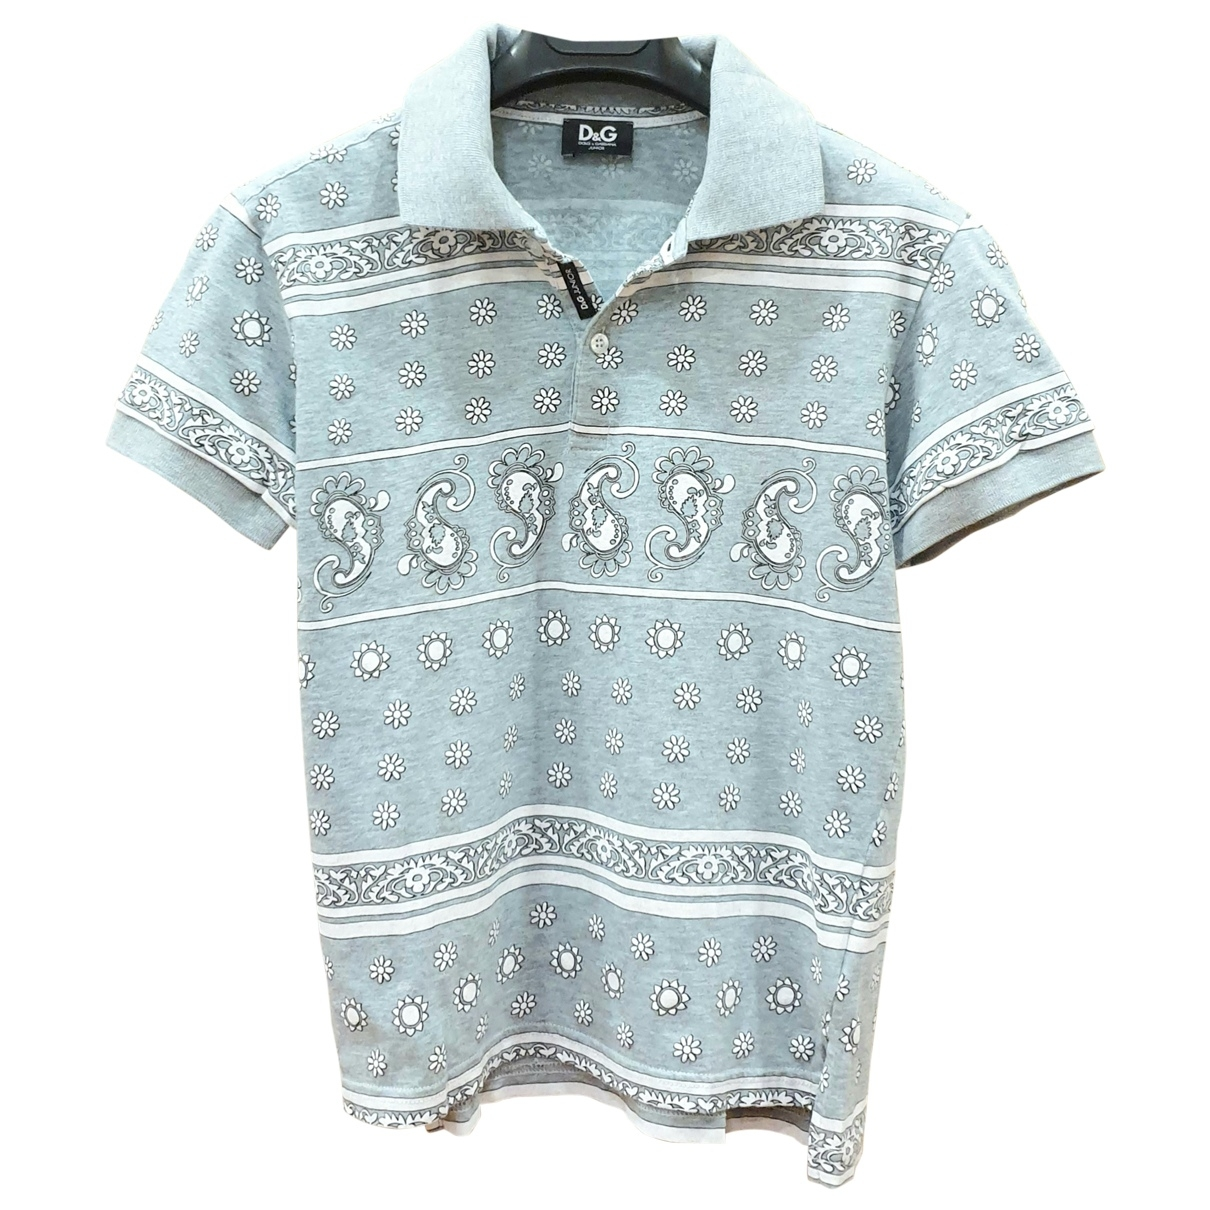 D&g \N Blue Cotton  top for Kids 8 years - up to 128cm FR